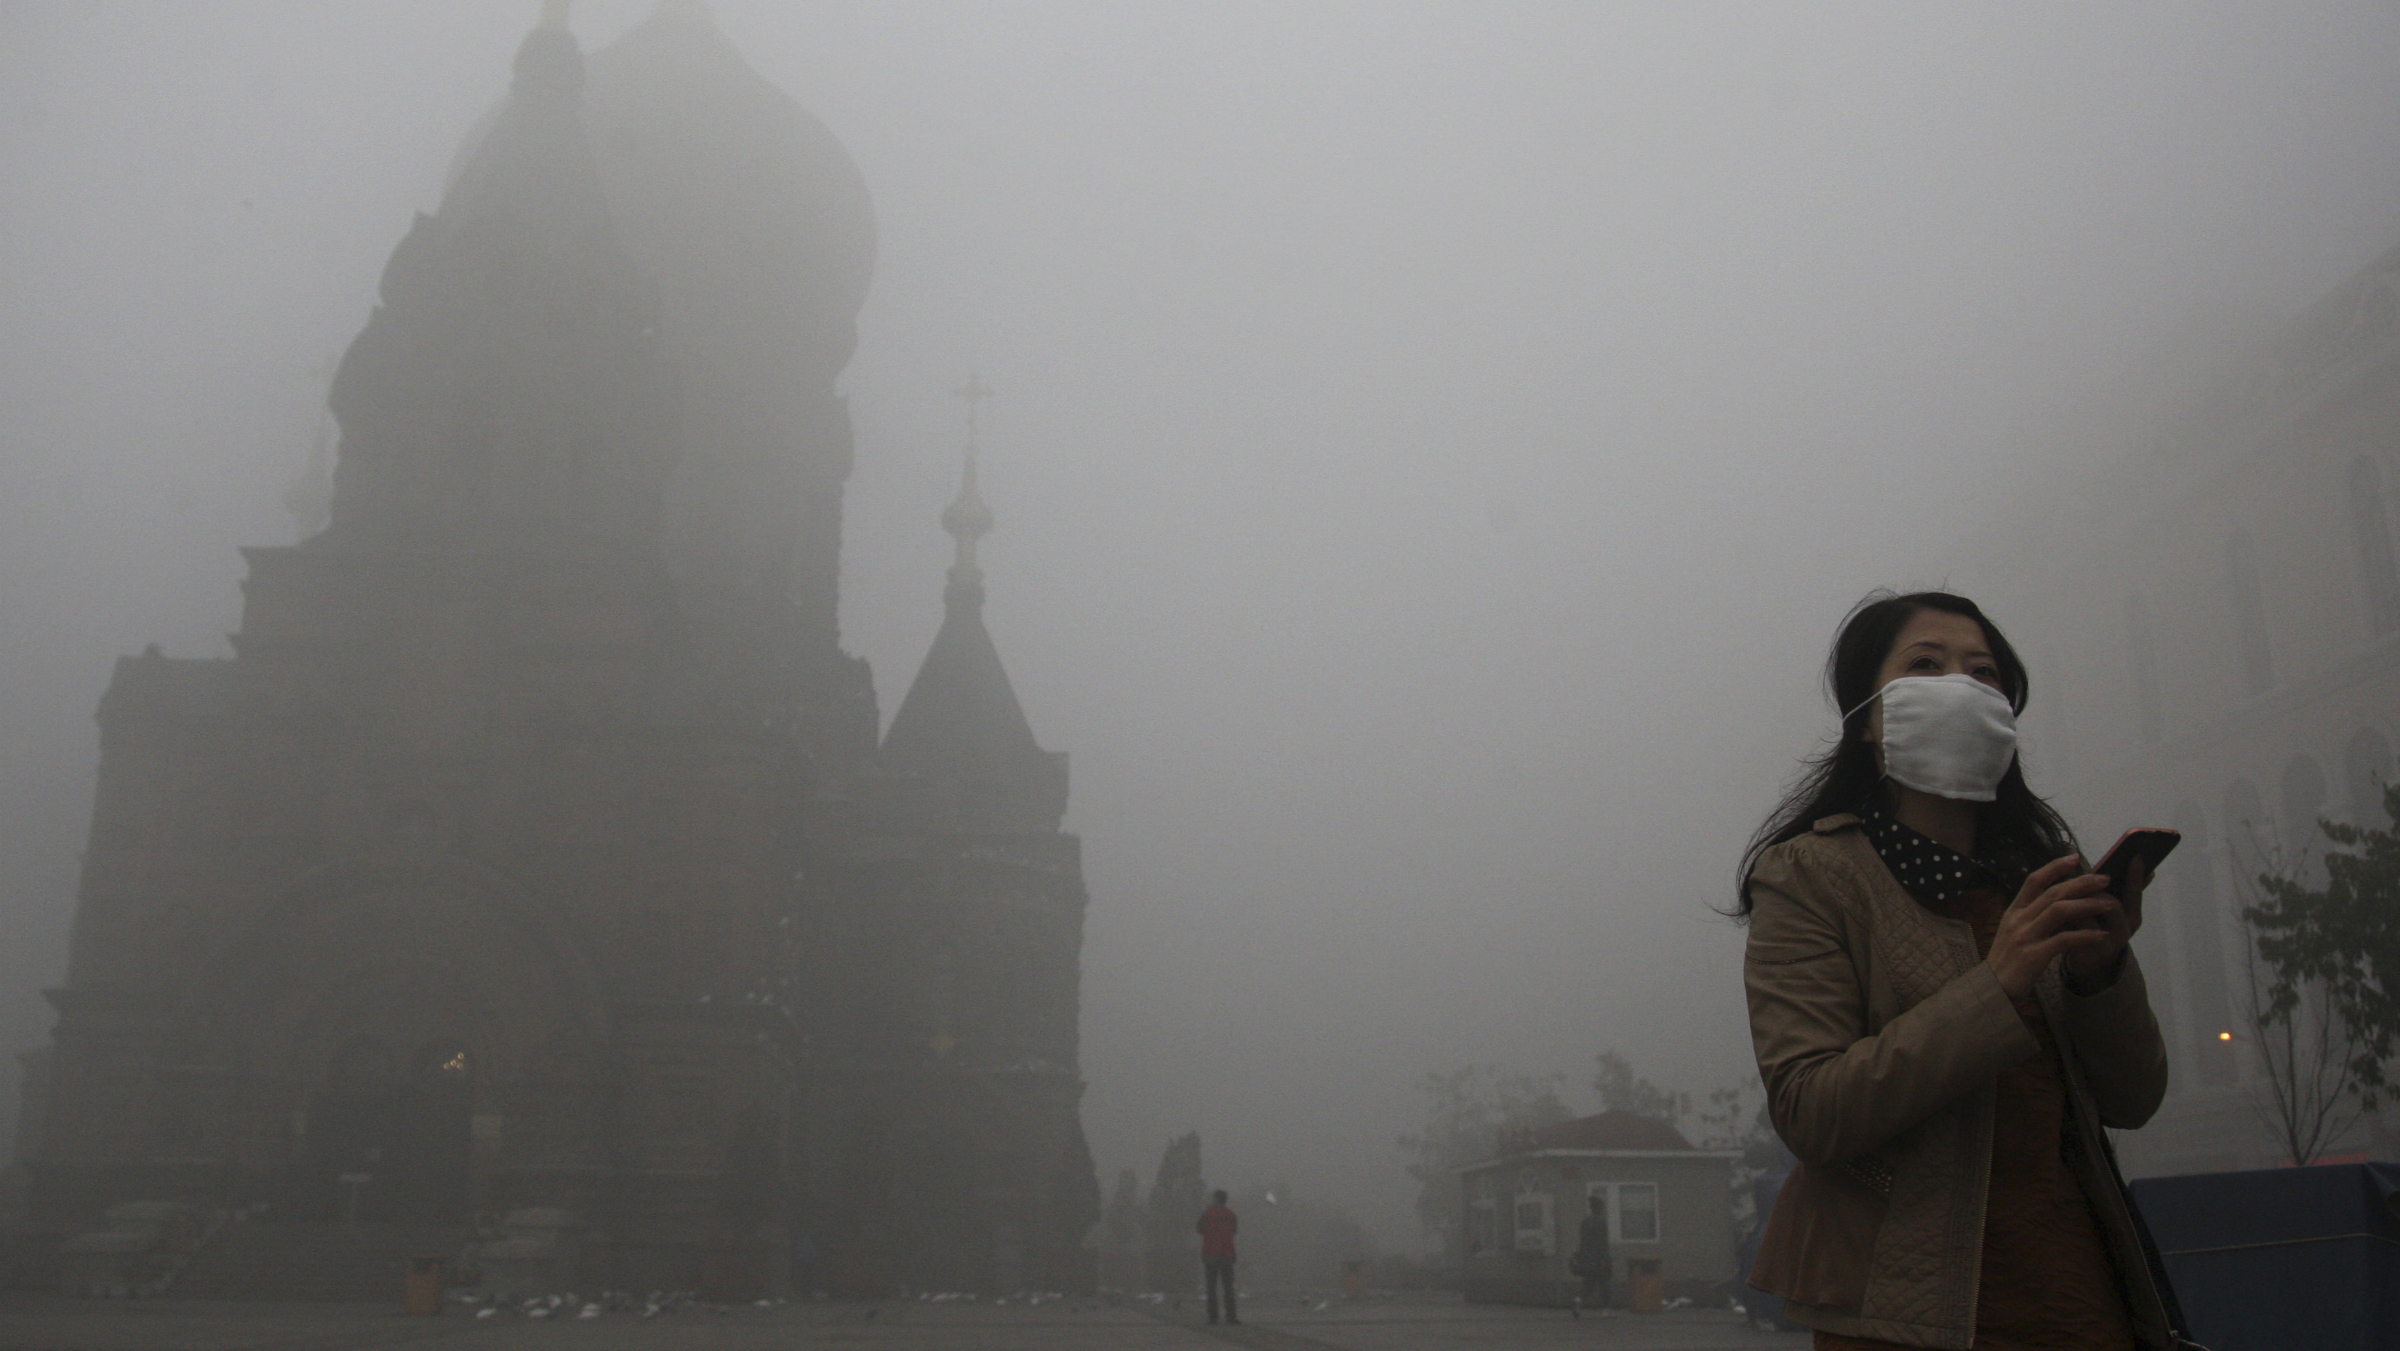 A woman wearing a mask checks her mobile phone during a smoggy day on the square in front of Harbin's landmark San Sophia church, in Heilongjiang province October 21, 2013. The second day of heavy smog with a PM 2.5 index has forced the closure of schools and highways, exceeding 500 micrograms per cubic meter on Monday morning in downtown Harbin, according to Xinhua News Agency. REUTERS/Stringer